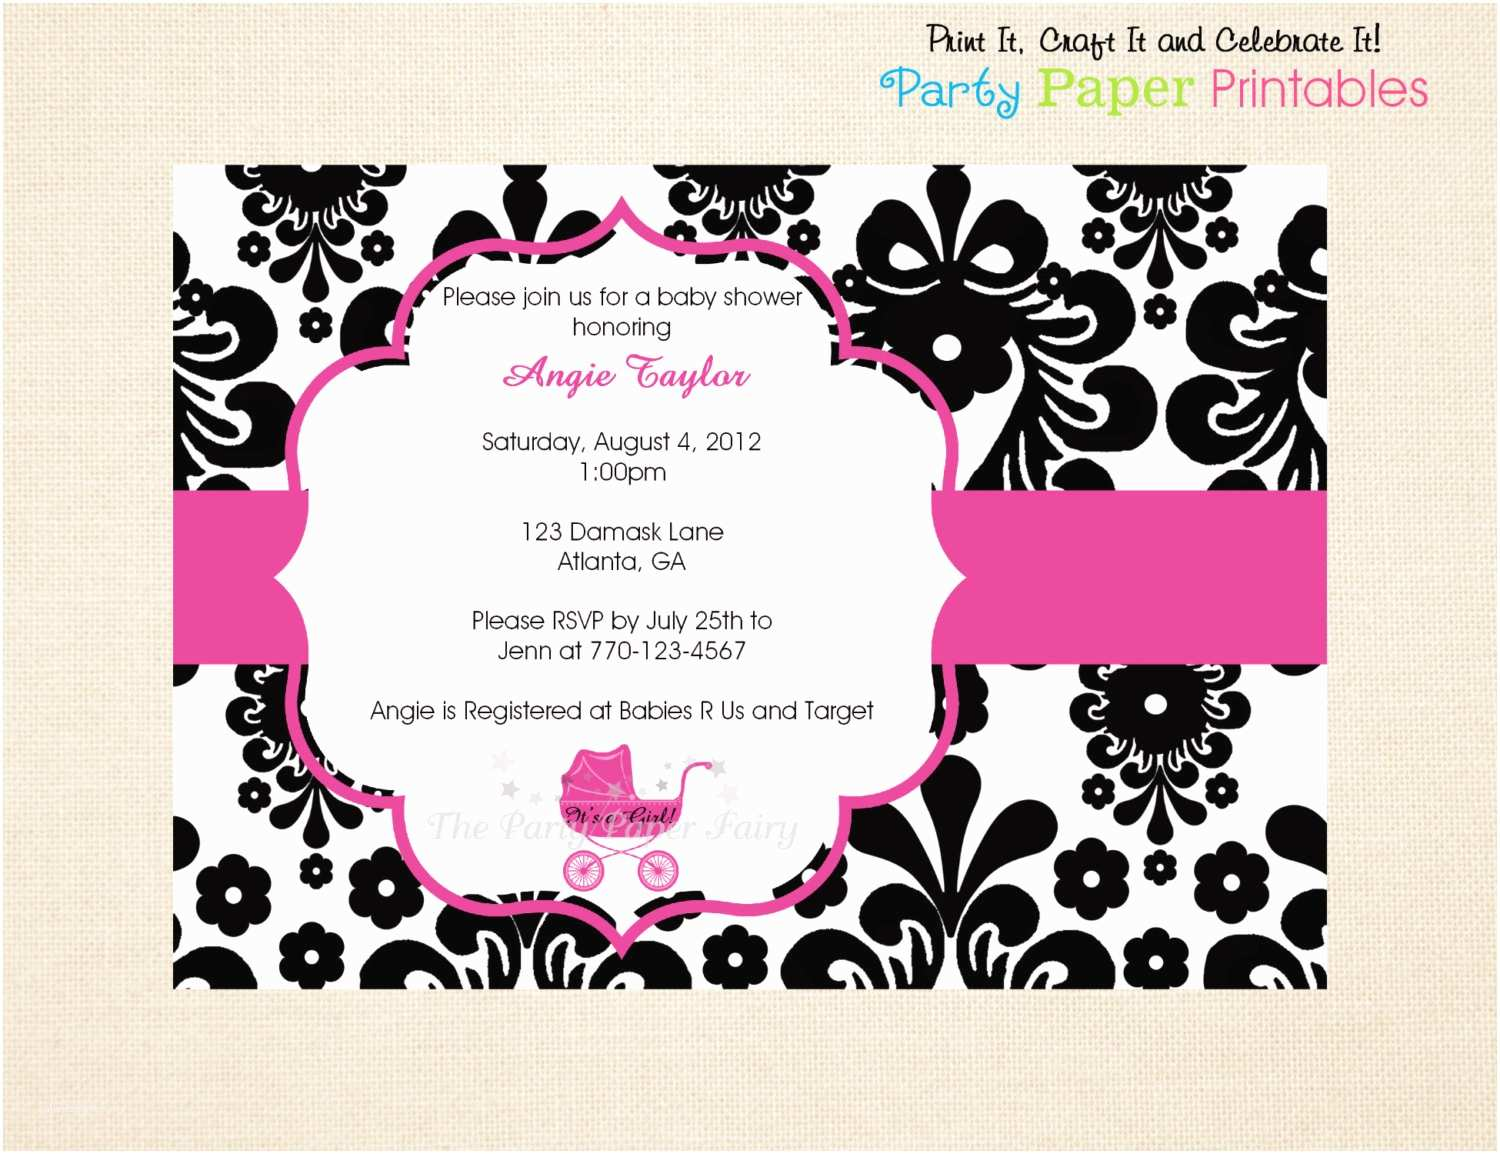 Black and White Baby Shower Invitations Printable Black and White Damask Baby by Partypaperprintables